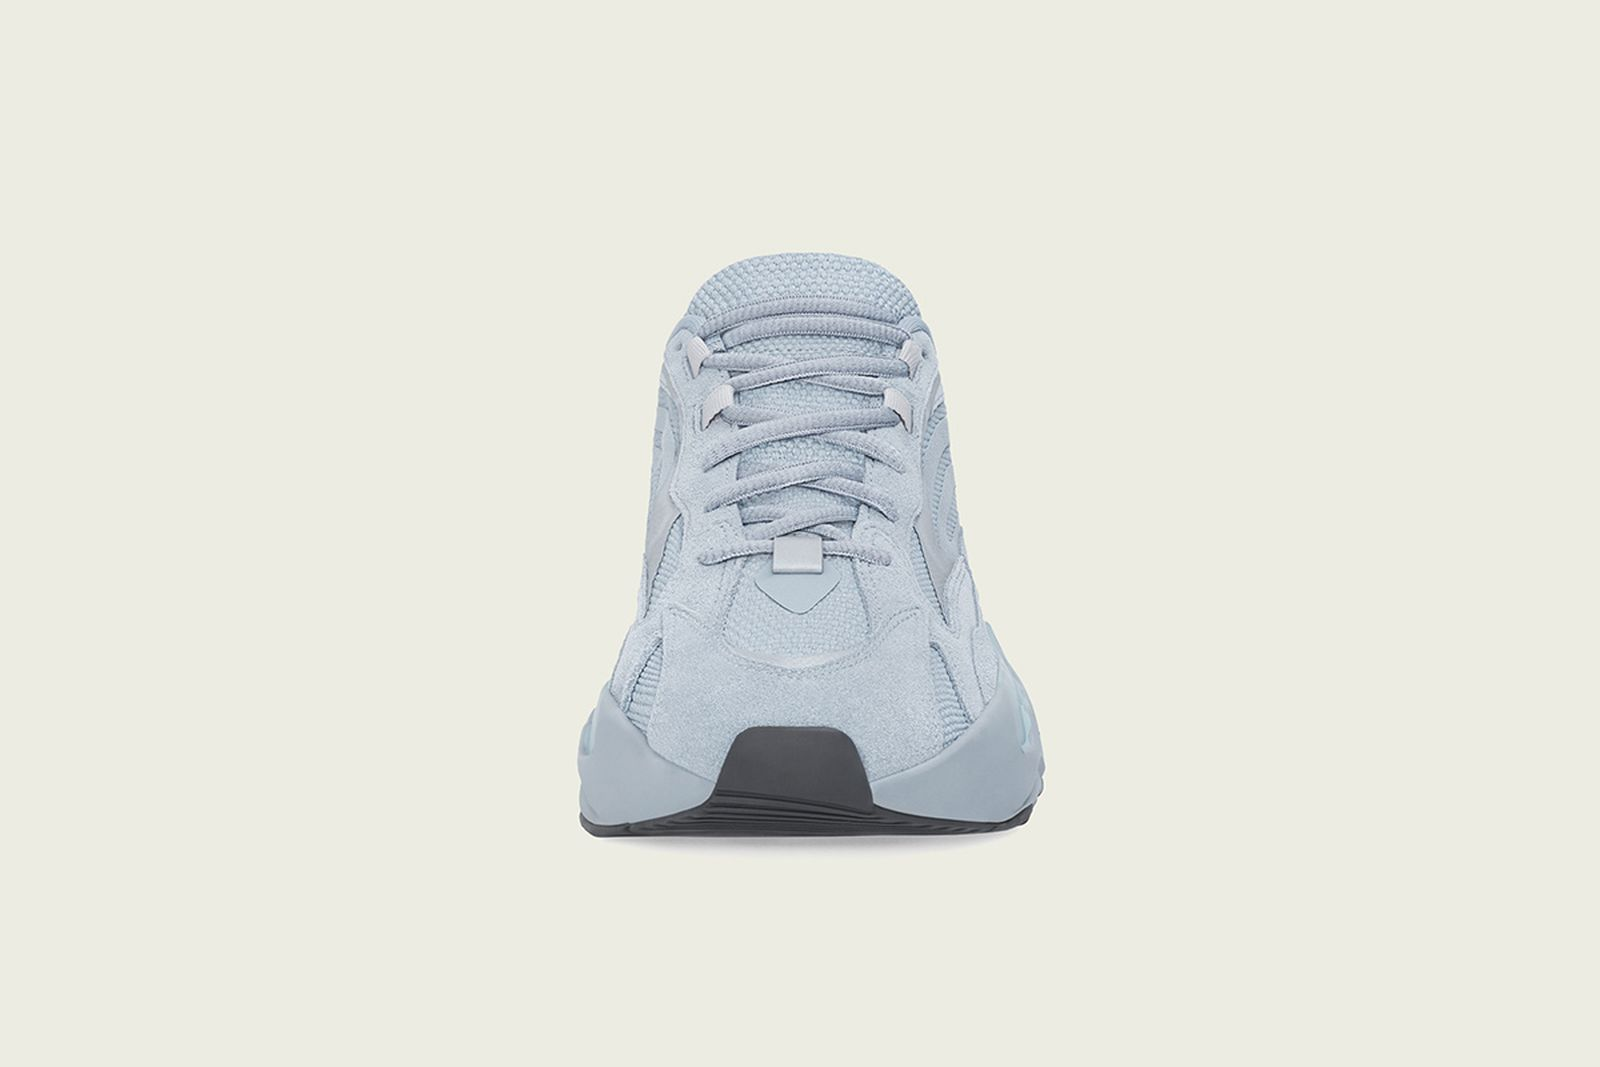 adidas yeezy boost 700 v2 hospital blue release date price kanye west